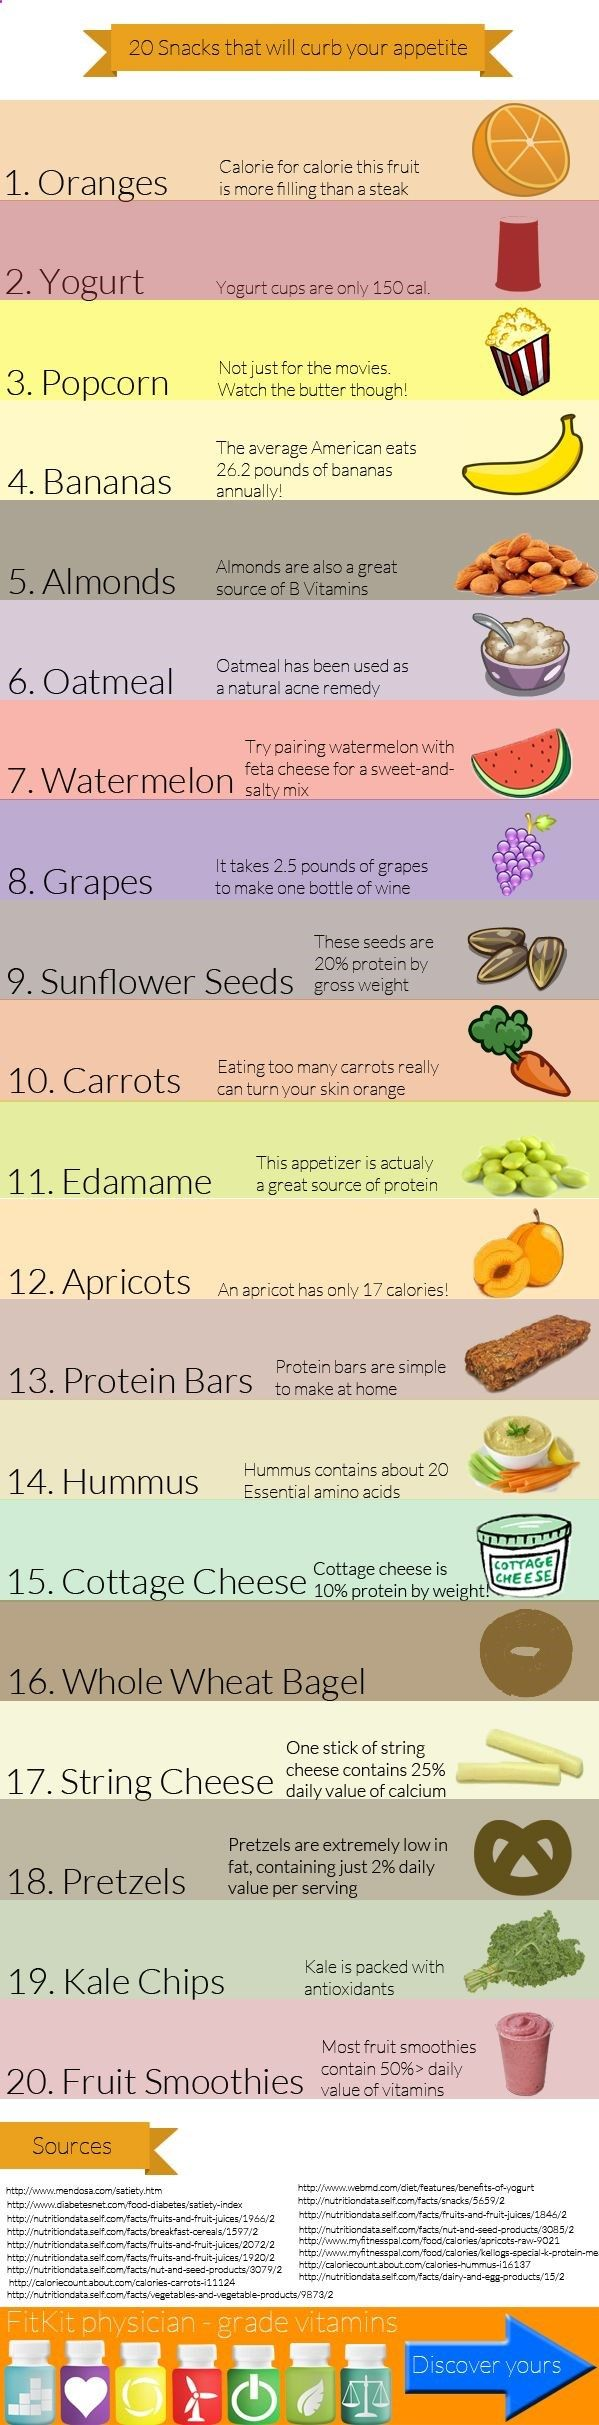 20 Snacks That Will Curb Your Appetite by fitkit.me